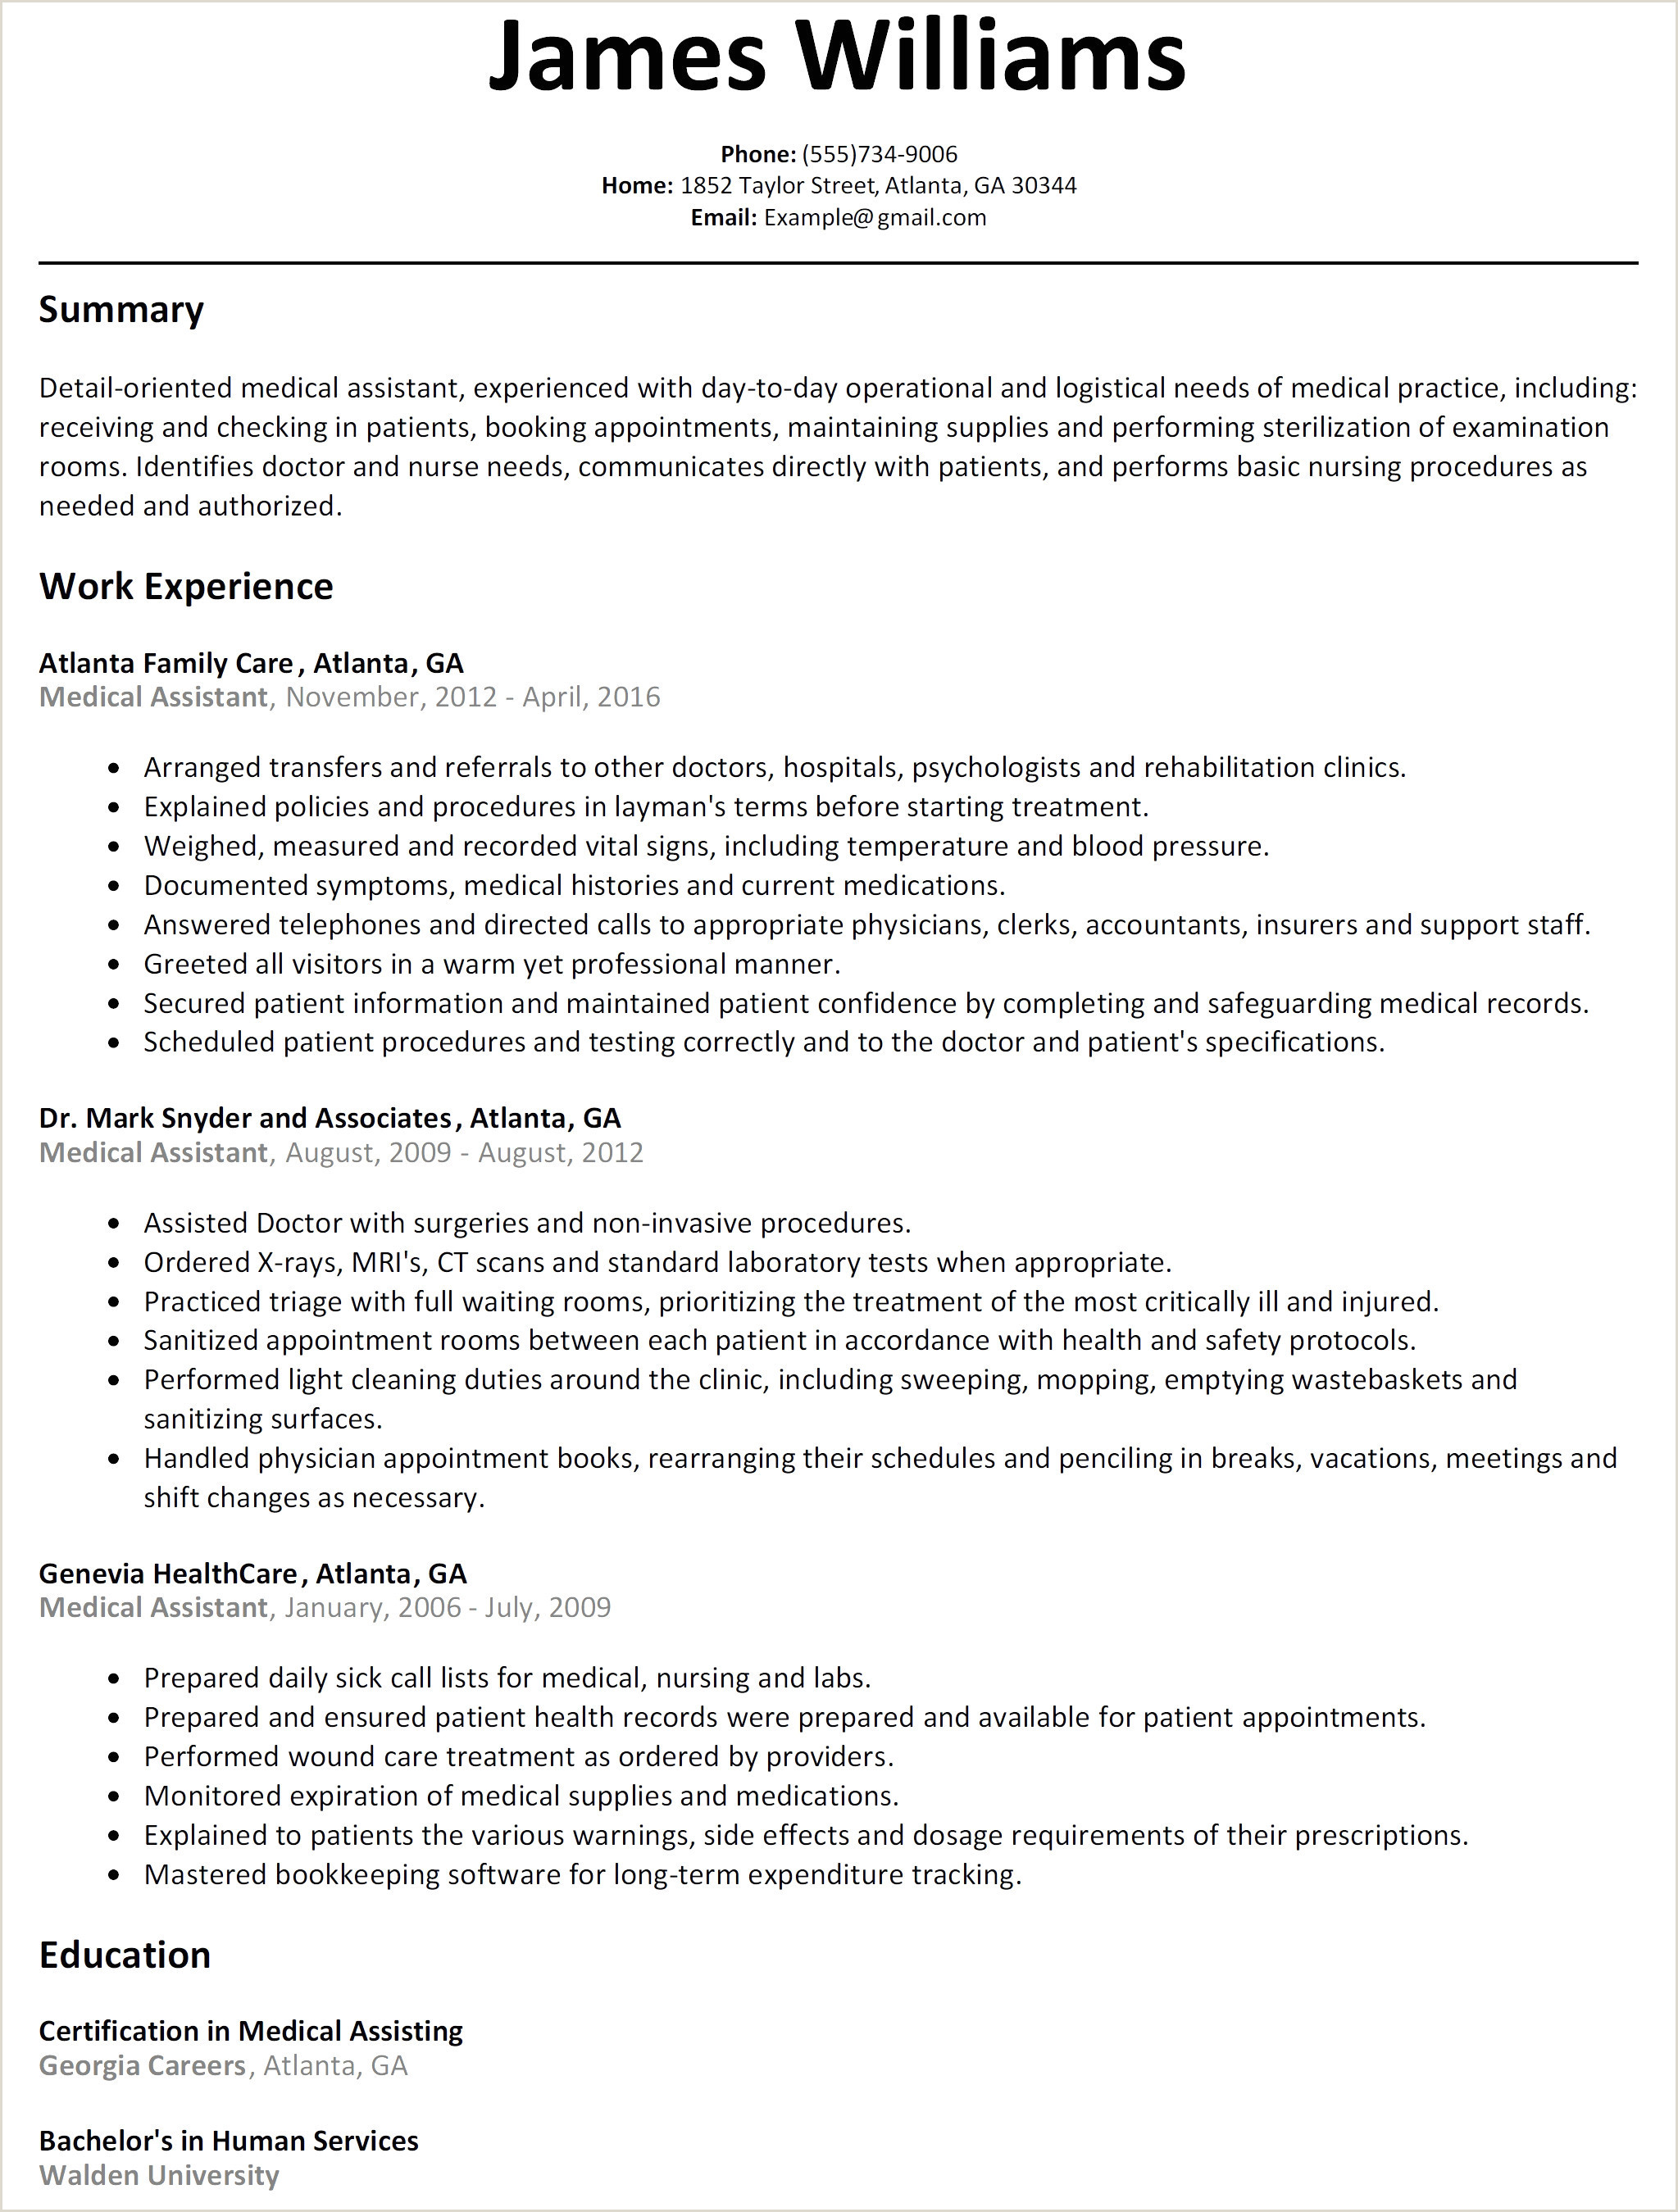 Sales Rep Resume Examples Elegant Outside Sales Resume Examples – 50ger